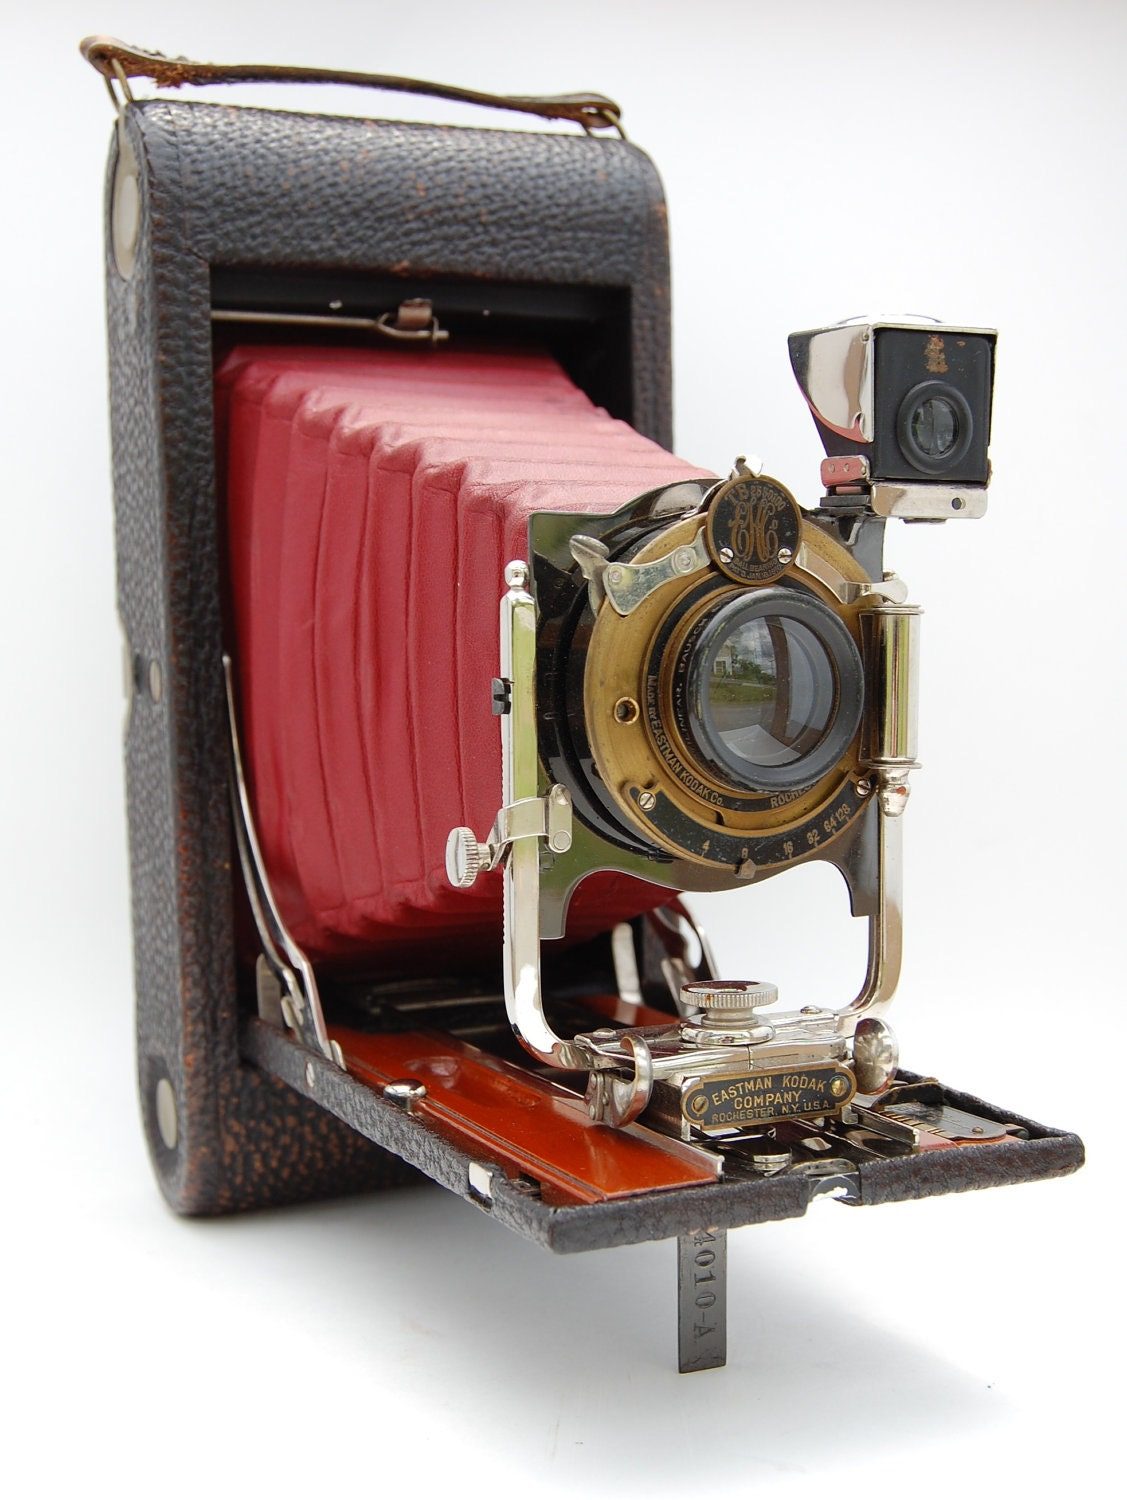 eastman kodak case Remember my selection select a region americas united states english.